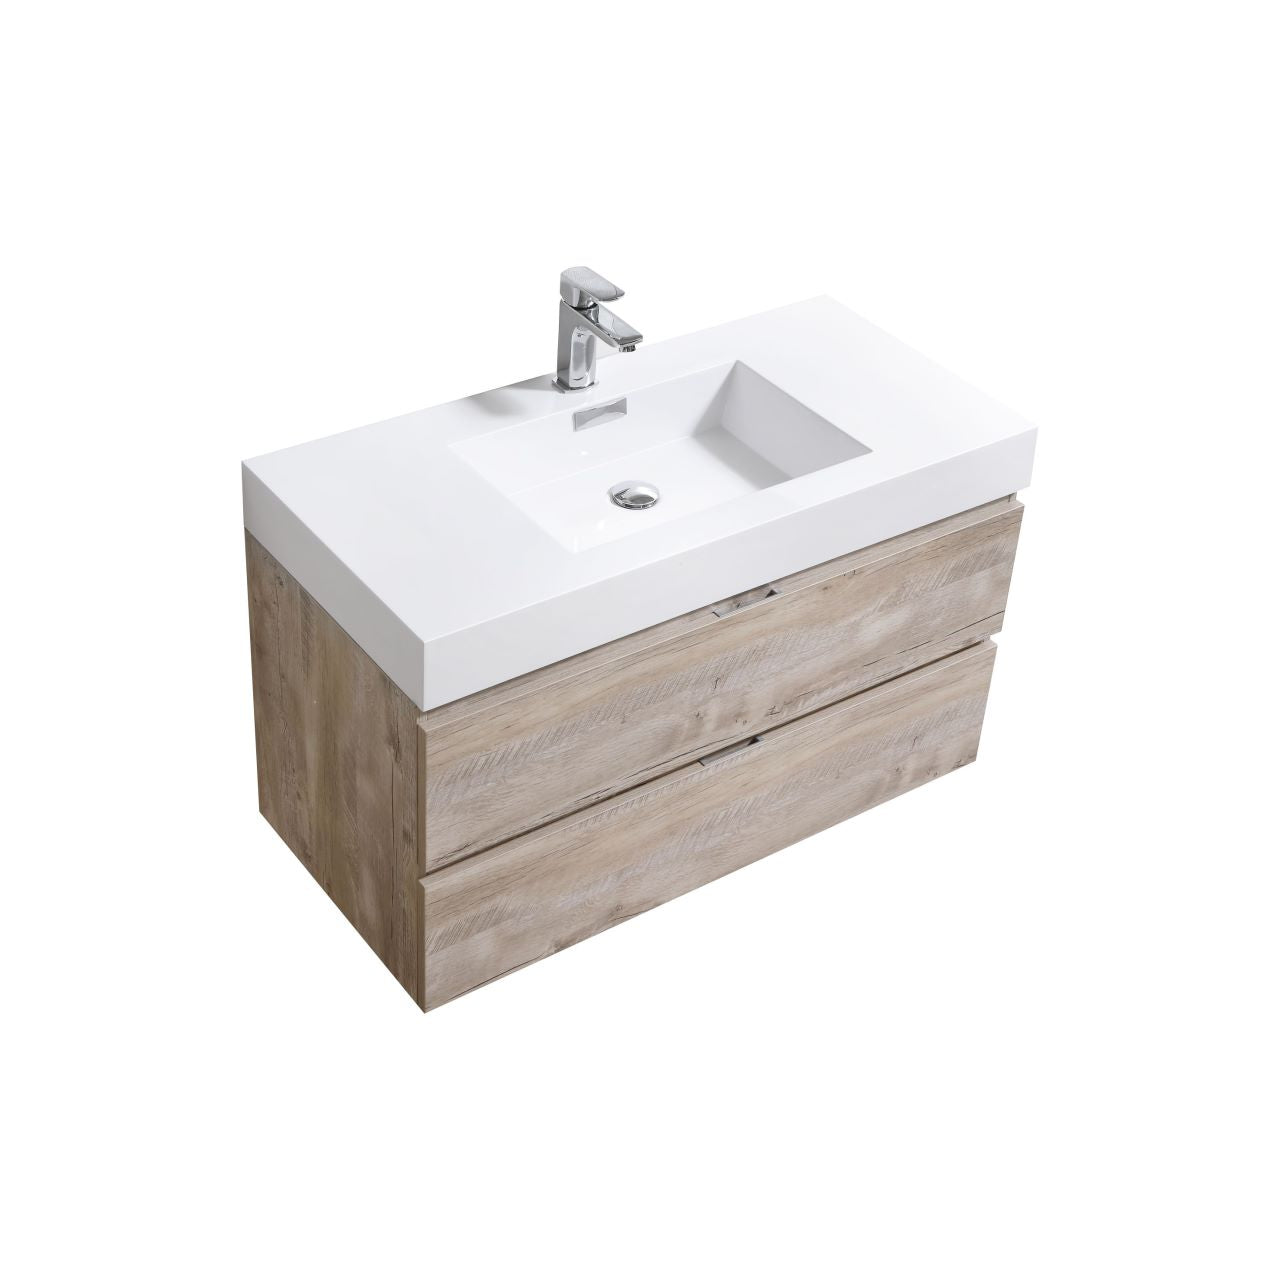 "BLISS- 40"" Nature Wood, Wall Mount Bathroom Vanity - Vanity Sale"